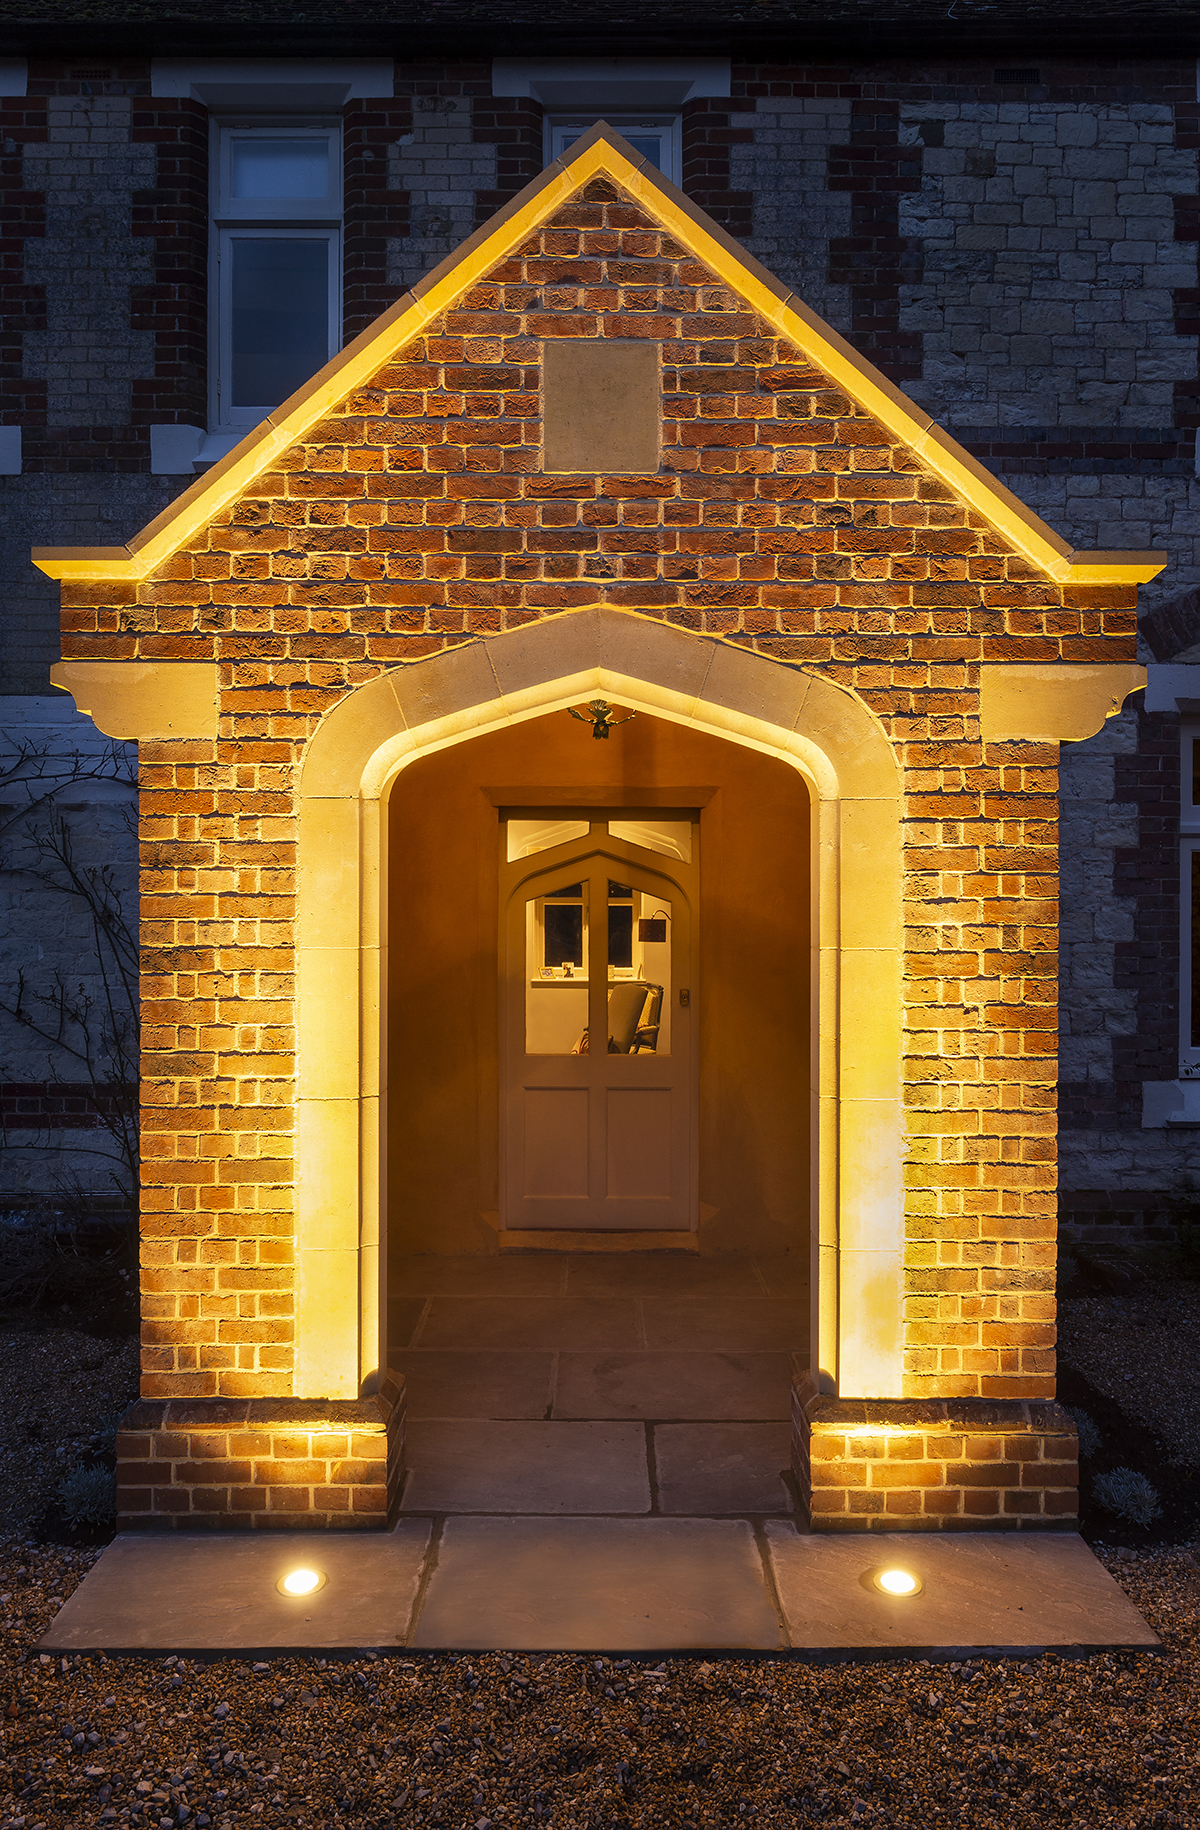 05-elsted-porch-rectory-house-extension-handmade-bricks-bath-stone-stonemasonry-architecture-chichester-west-sussex-south-downs-national-park-uk-rider-stirland-architects.jpg